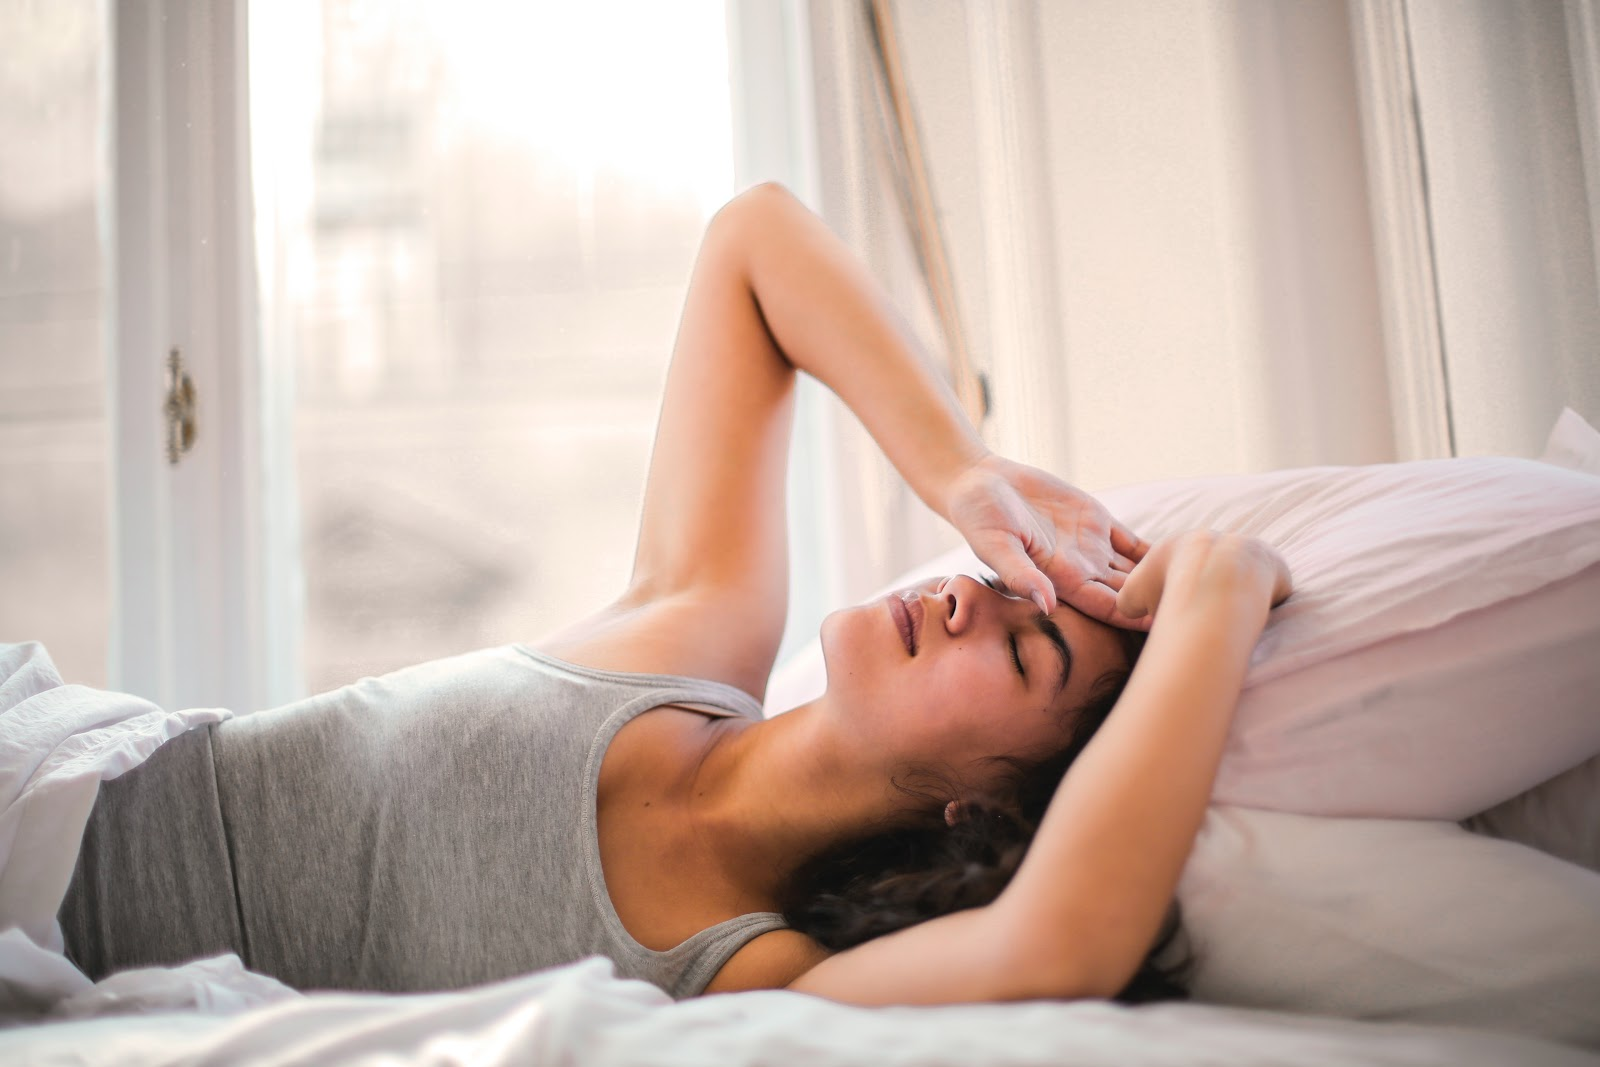 a woman is lying on the bed after waking up